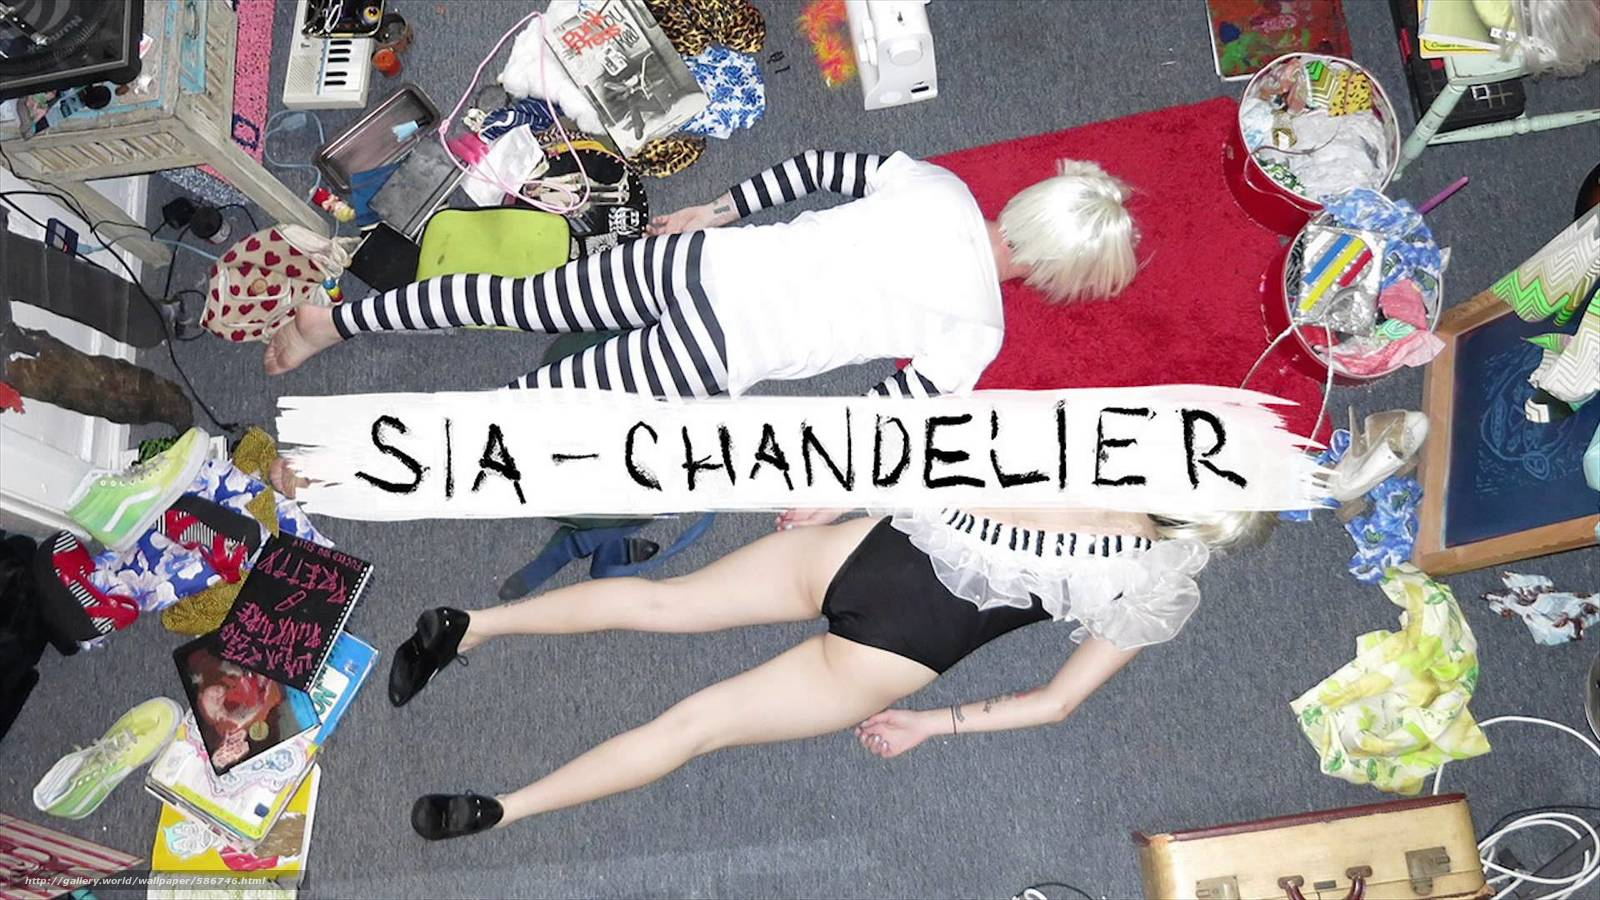 Download wallpaper sia chandelier song music free desktop download wallpaper sia chandelier song music free desktop wallpaper in the resolution 1920x1080 picture 586746 arubaitofo Choice Image